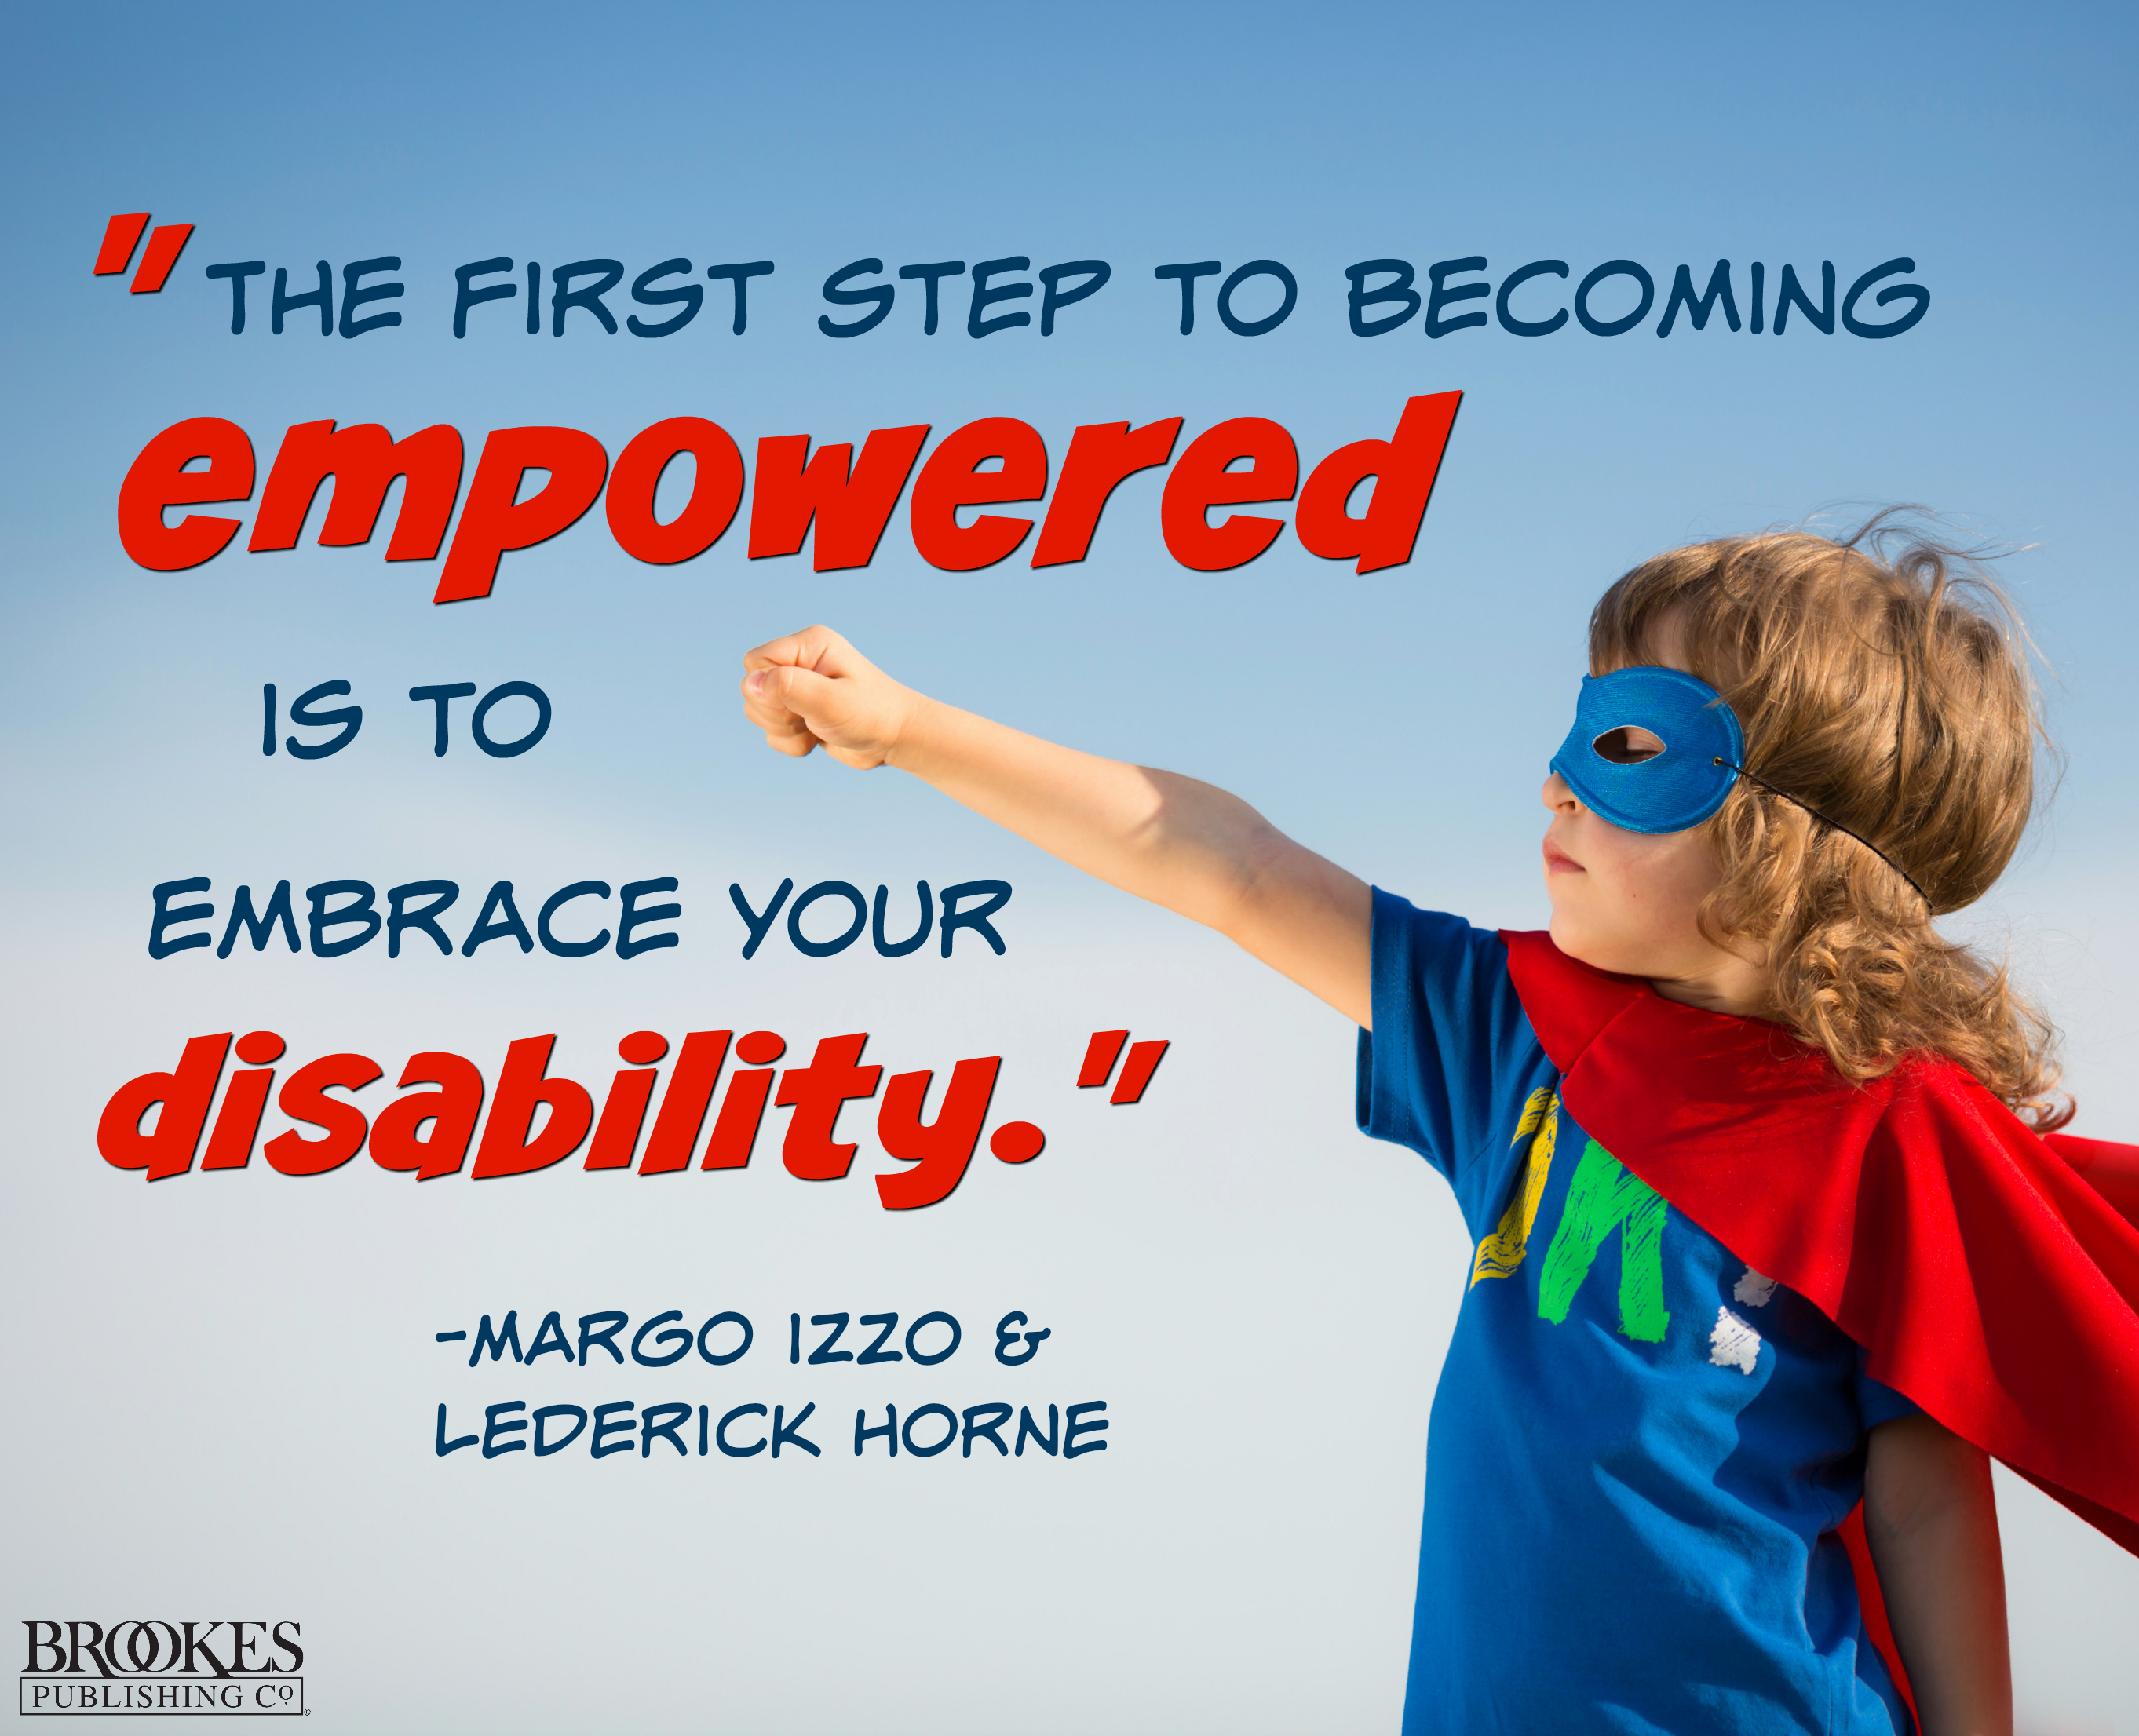 empowered disability margo izzo lederick horne